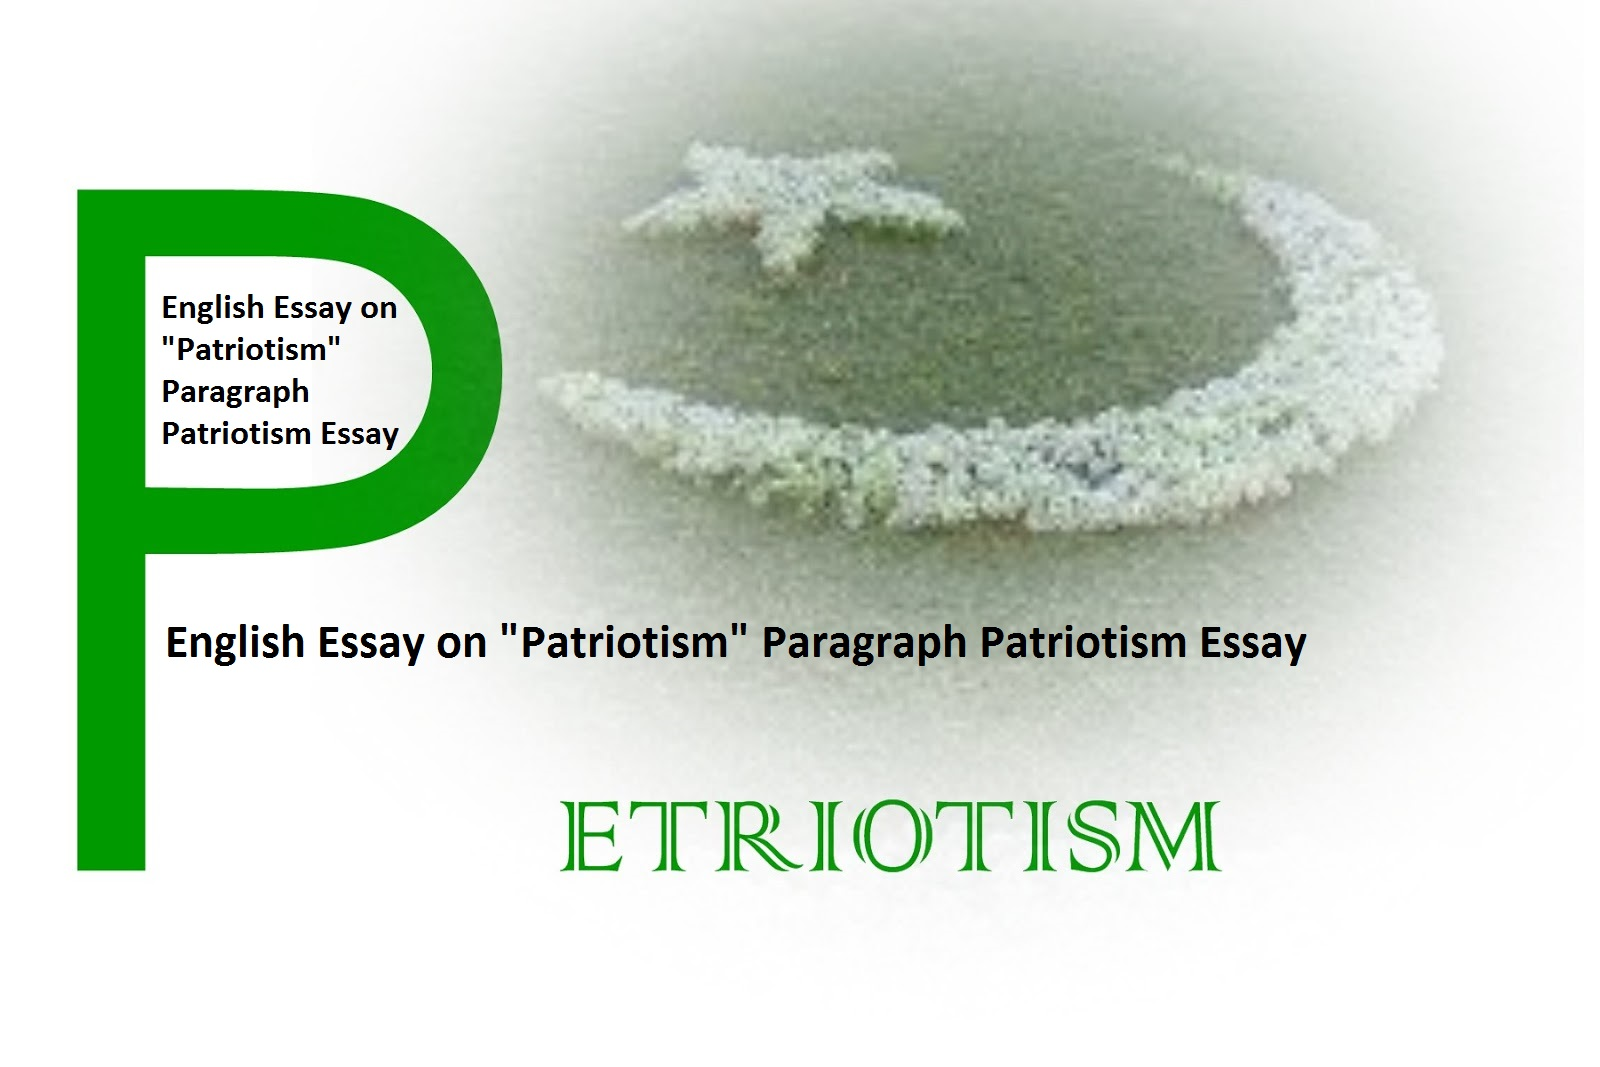 essay patriotism english essay on patriotism paragraph patriotism  english essay on patriotism paragraph patriotism essay all english essay on patriotism paragraph patriotism essay